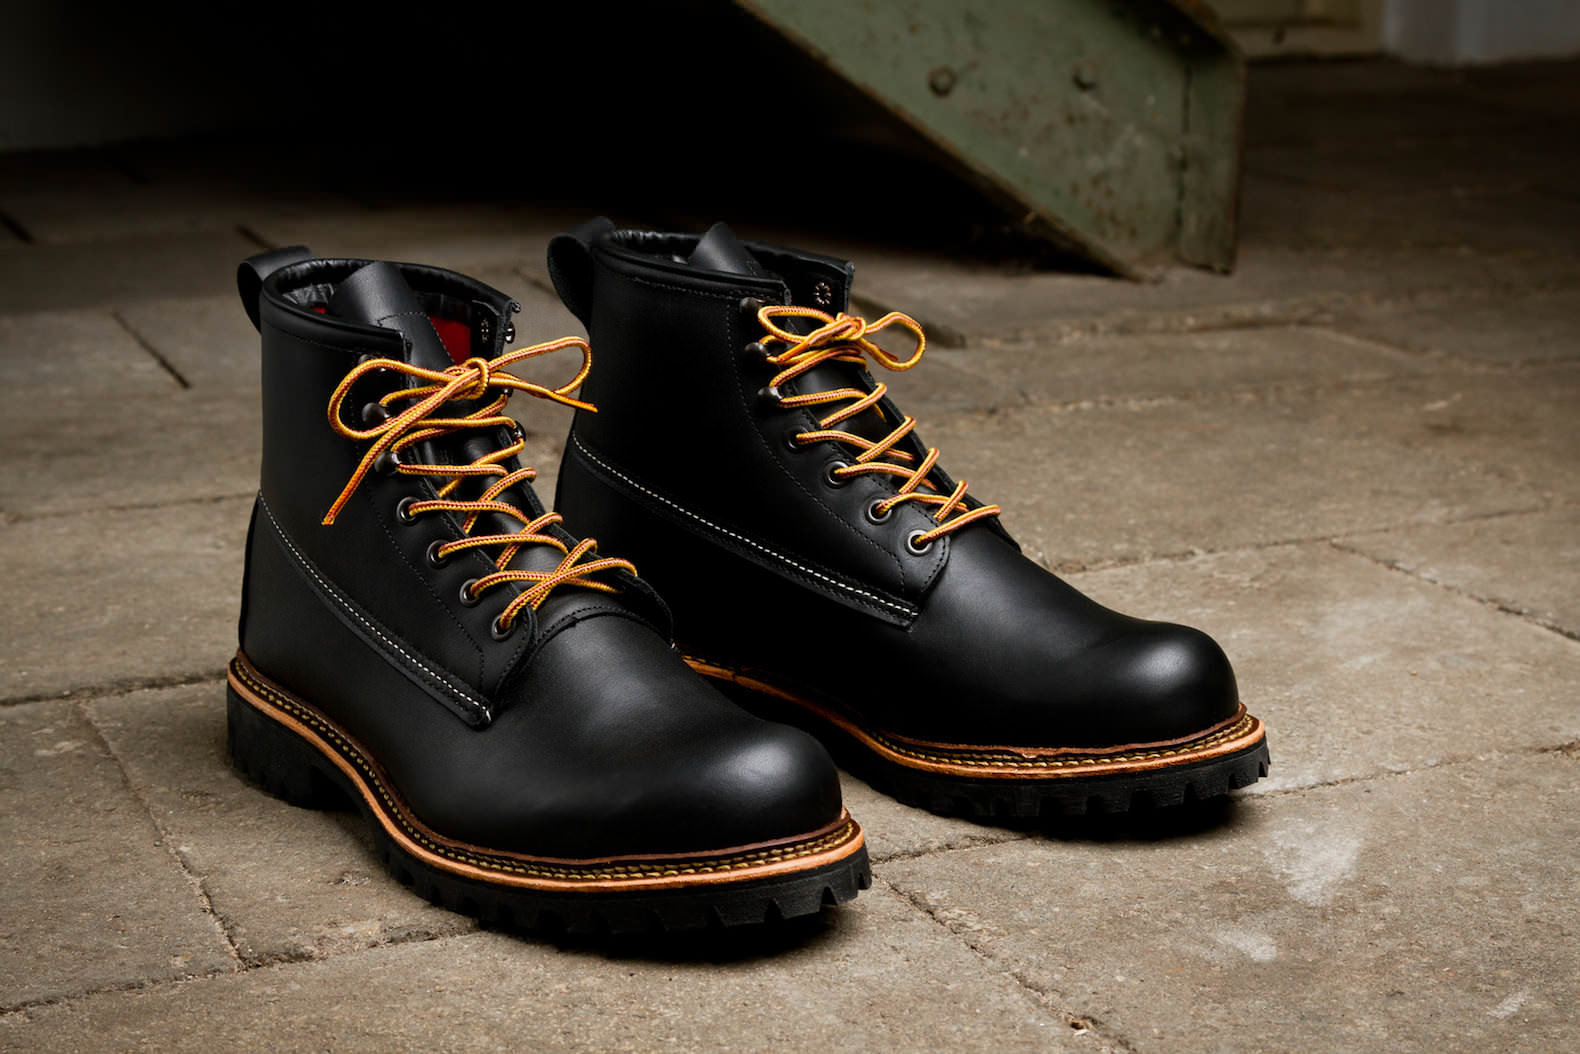 Best Red Wing Boots bF4pDNTQ